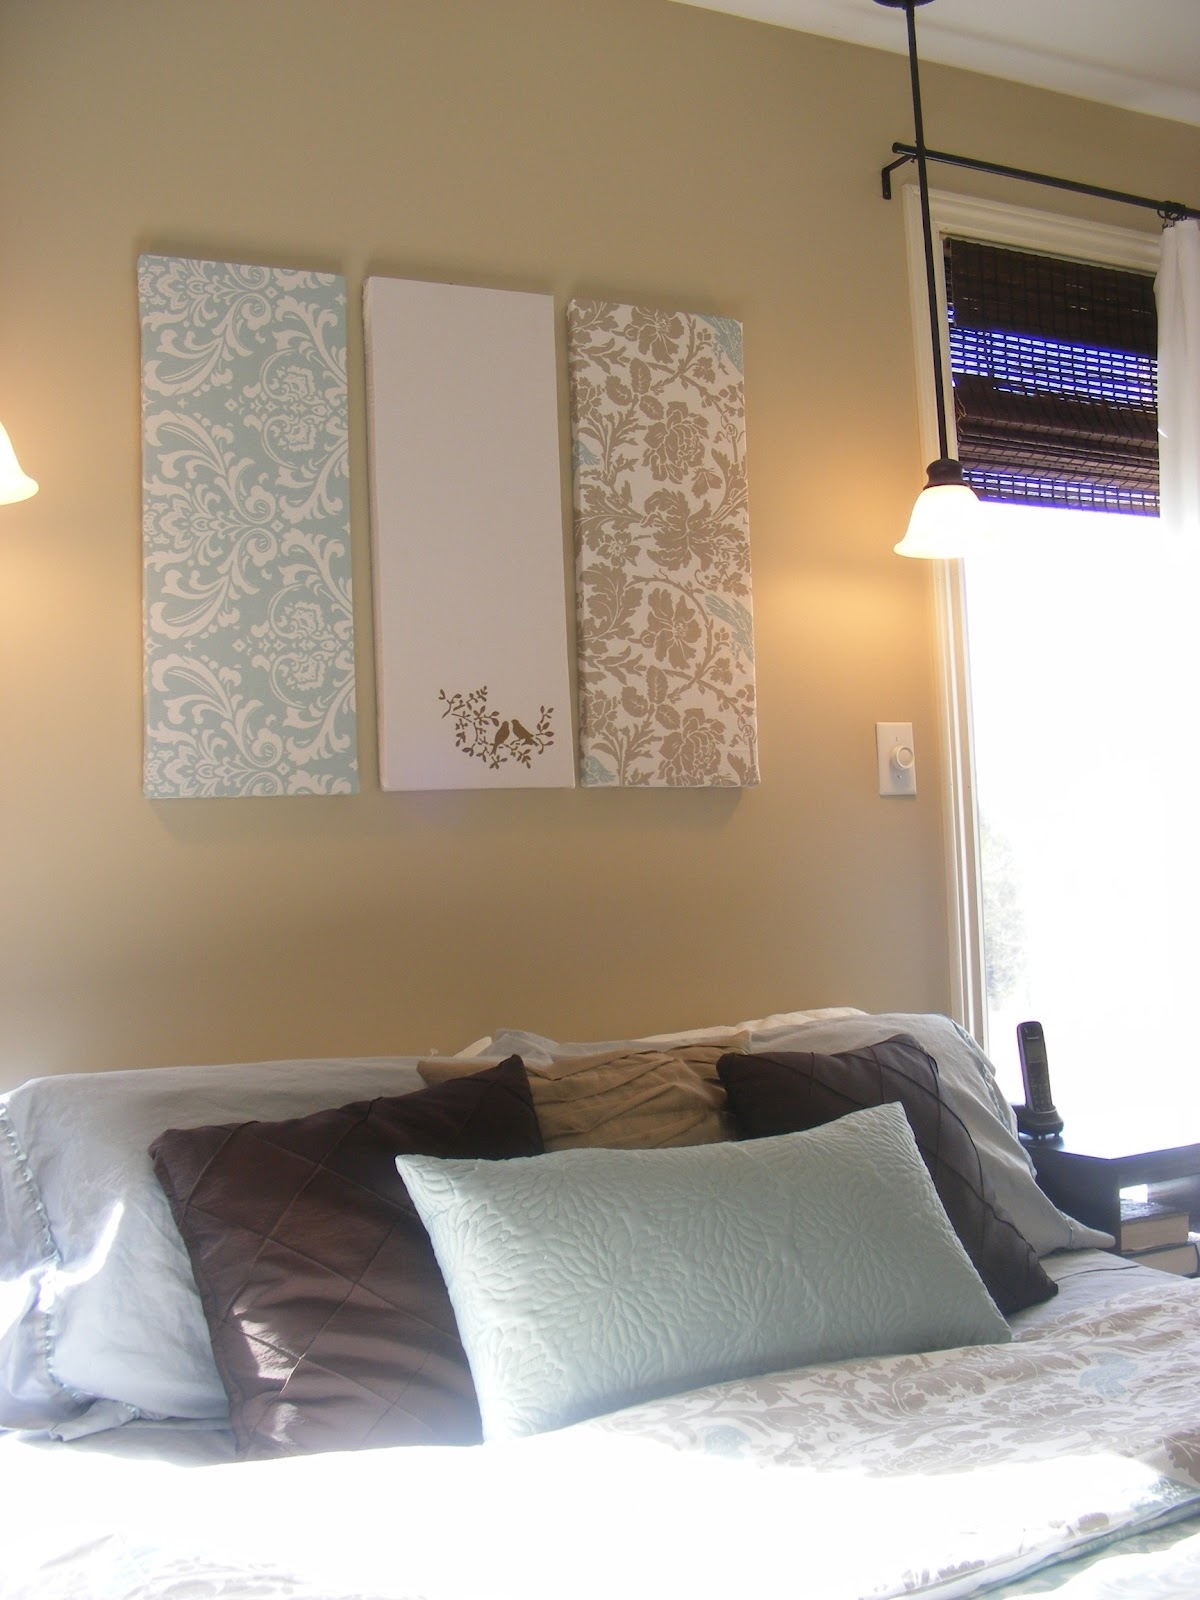 The Complete Guide To Imperfect Homemaking: Simple, Thrifty Diy Art Pertaining To Most Current Fabric Wrapped Styrofoam Wall Art (View 13 of 15)